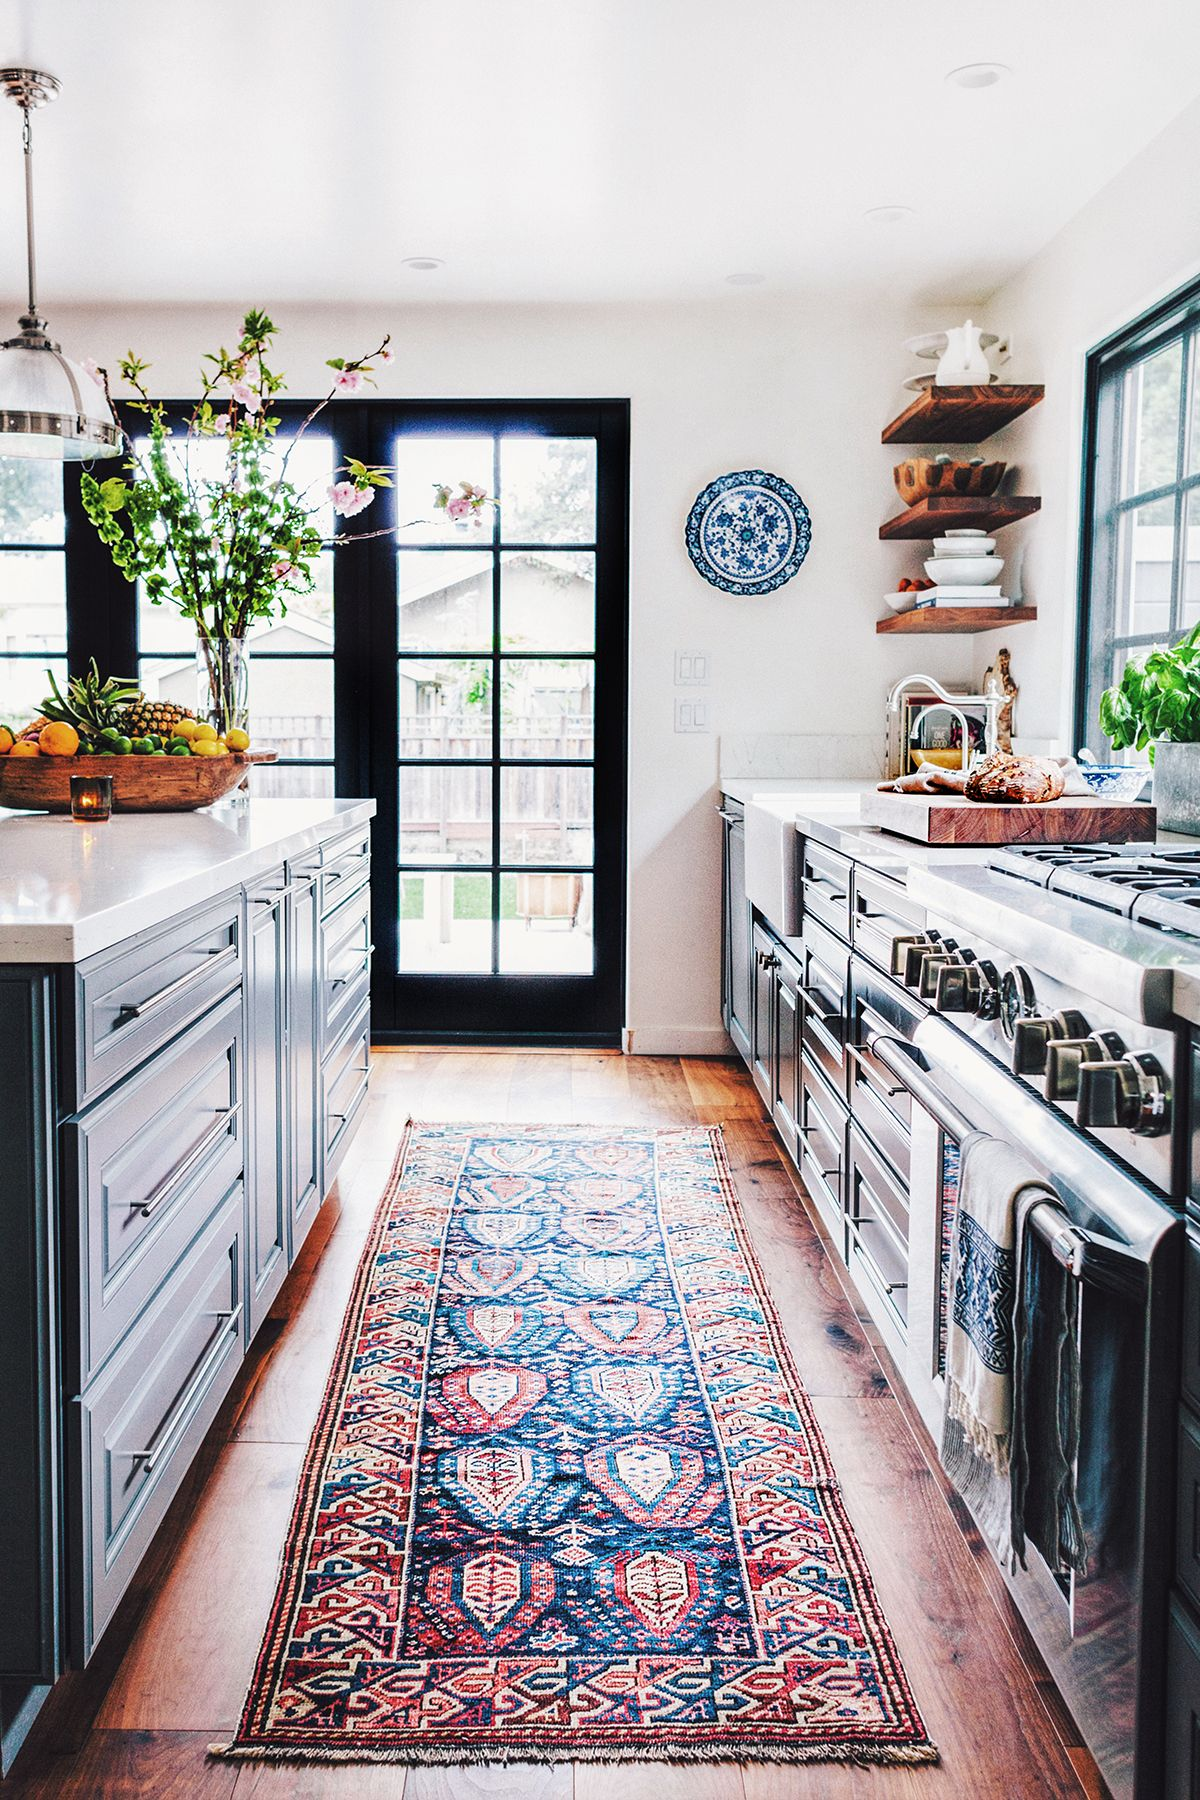 Finding The Right Antique Rug Home Home Kitchens Kitchen Rug